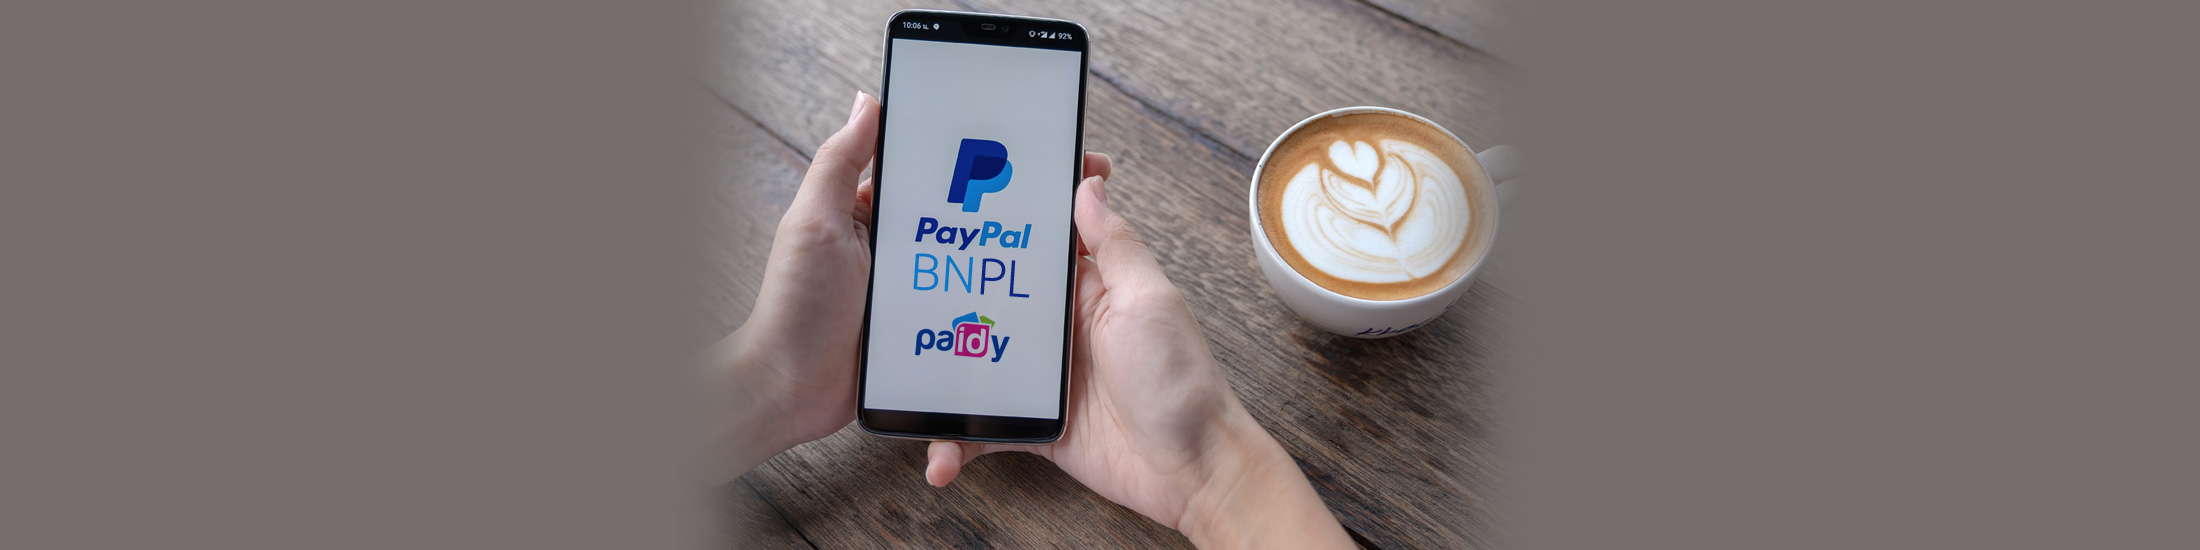 PayPal Bolsters BNPL Offering, Acquires Japanese Provider Paidy for $2.7 Billion